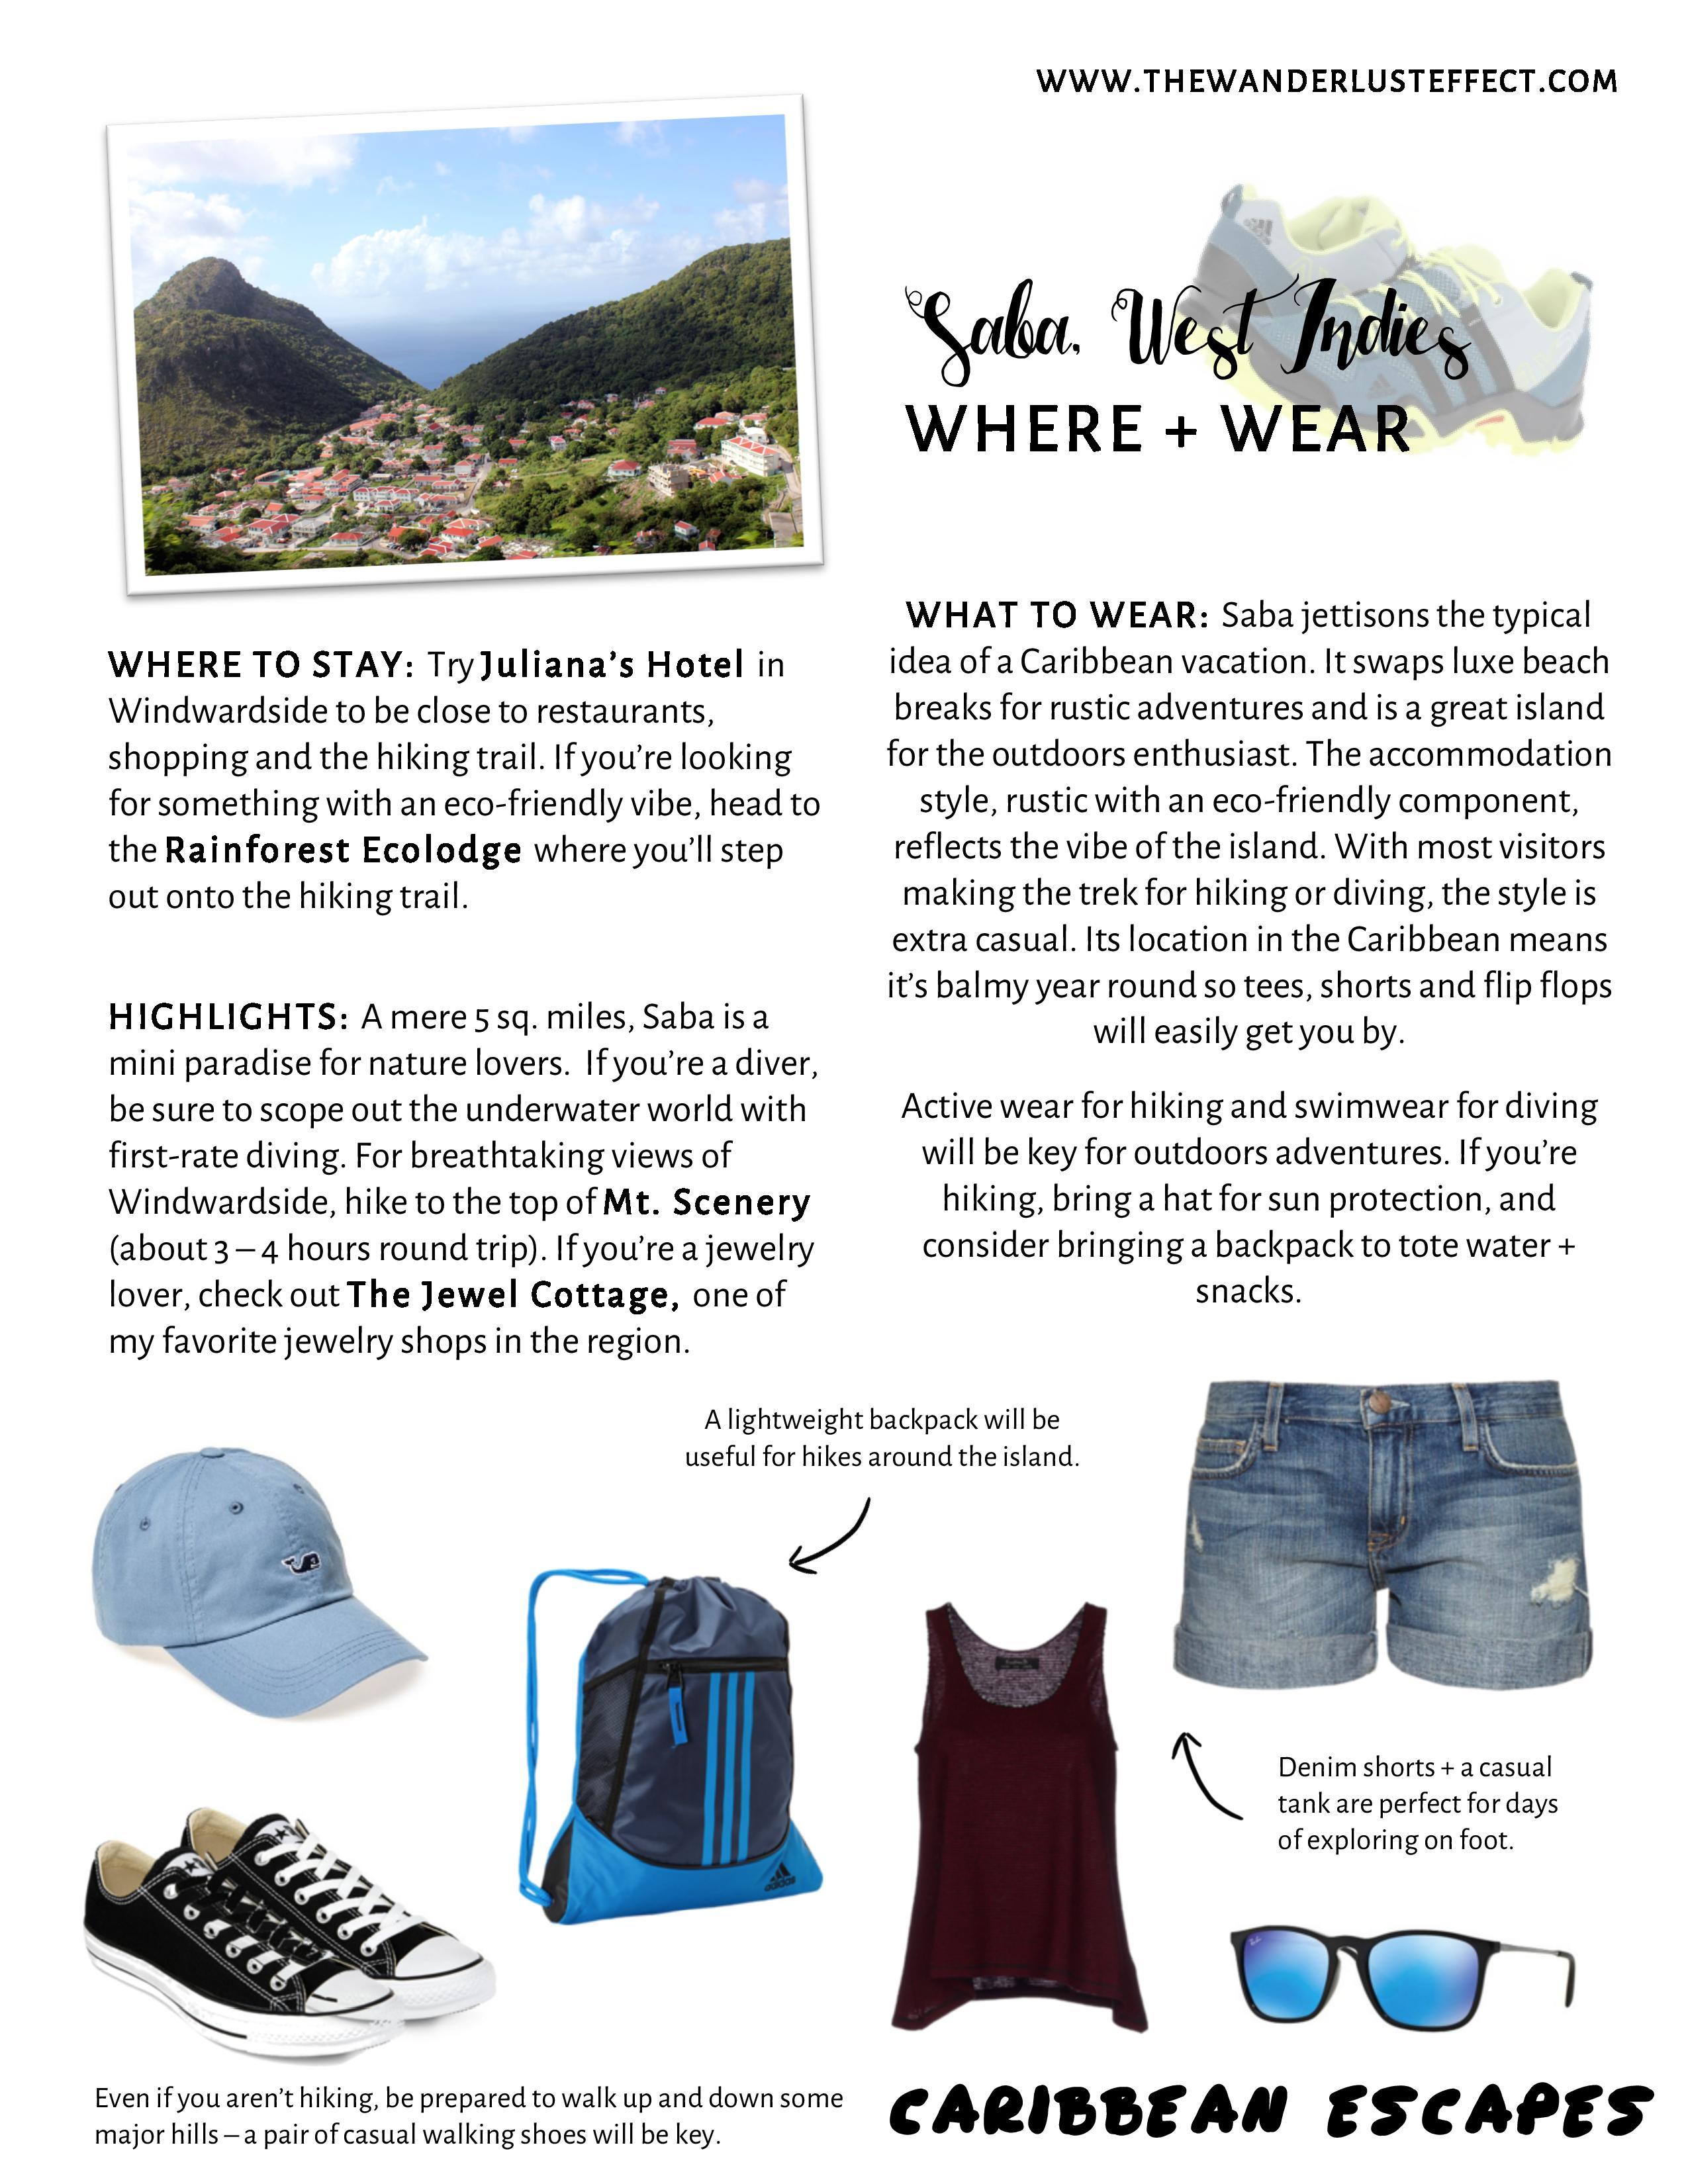 Style Travel Guide for Saba, West Indies #Caribbean #Adventure #TravelFashion